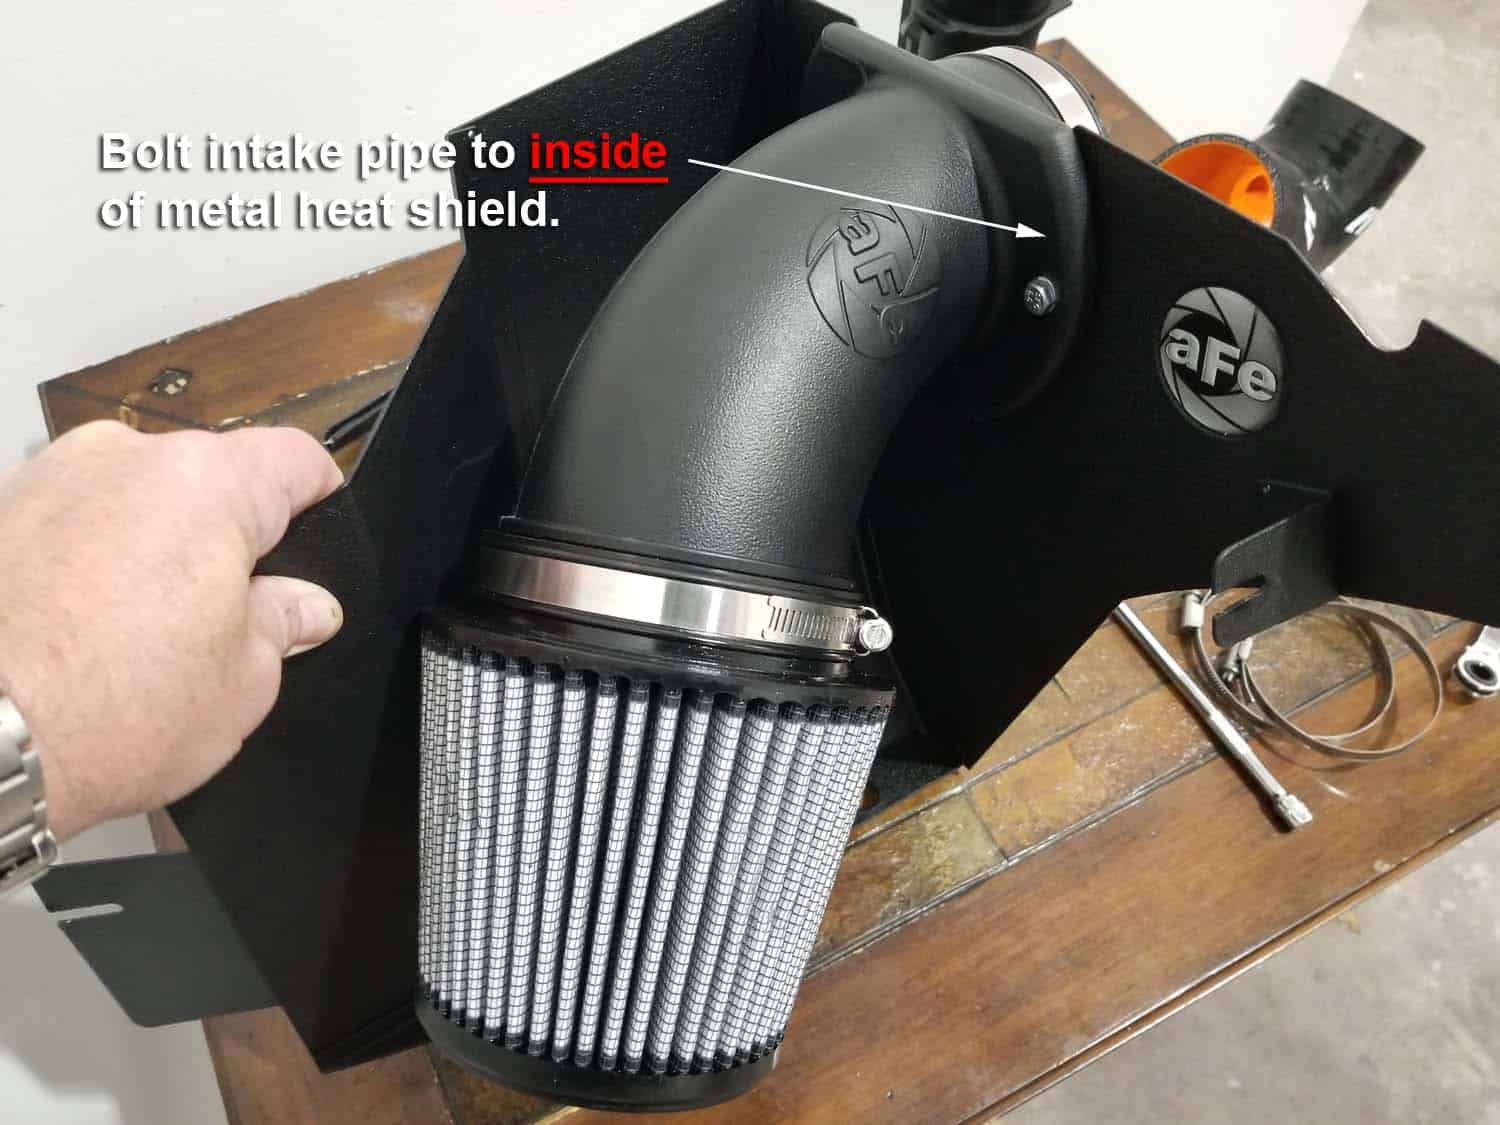 BMW E36 cold air intake - prepping the new cold air intake